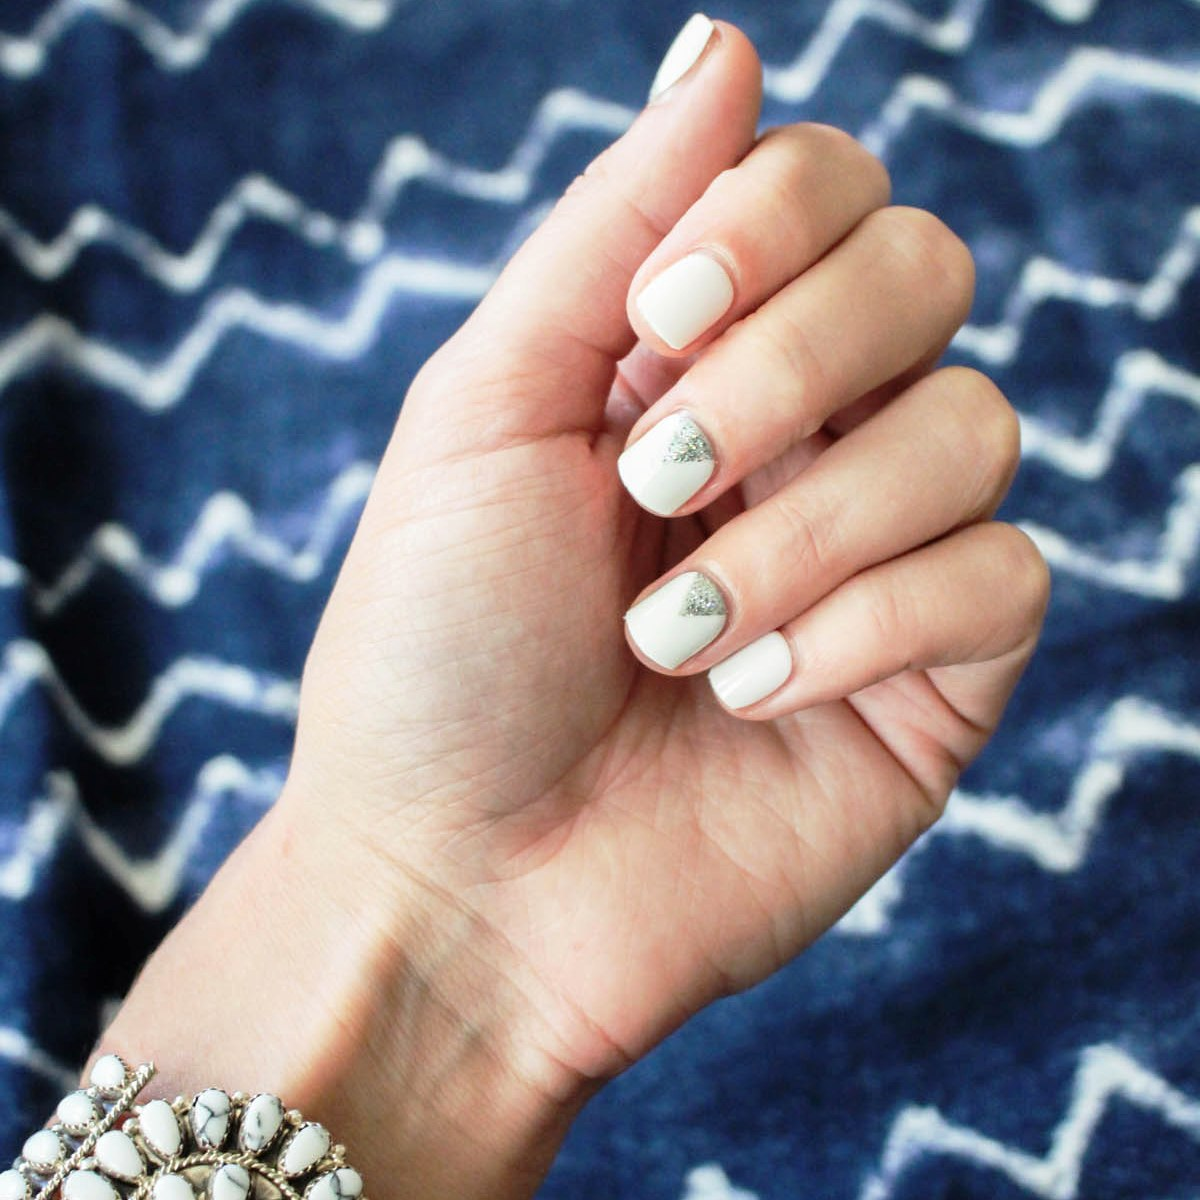 3 Manicure Ideas For Wedding Season - Cool and Modern Nails. Silver Nail Design. Essie hors d'oeuvres und blanc (2)